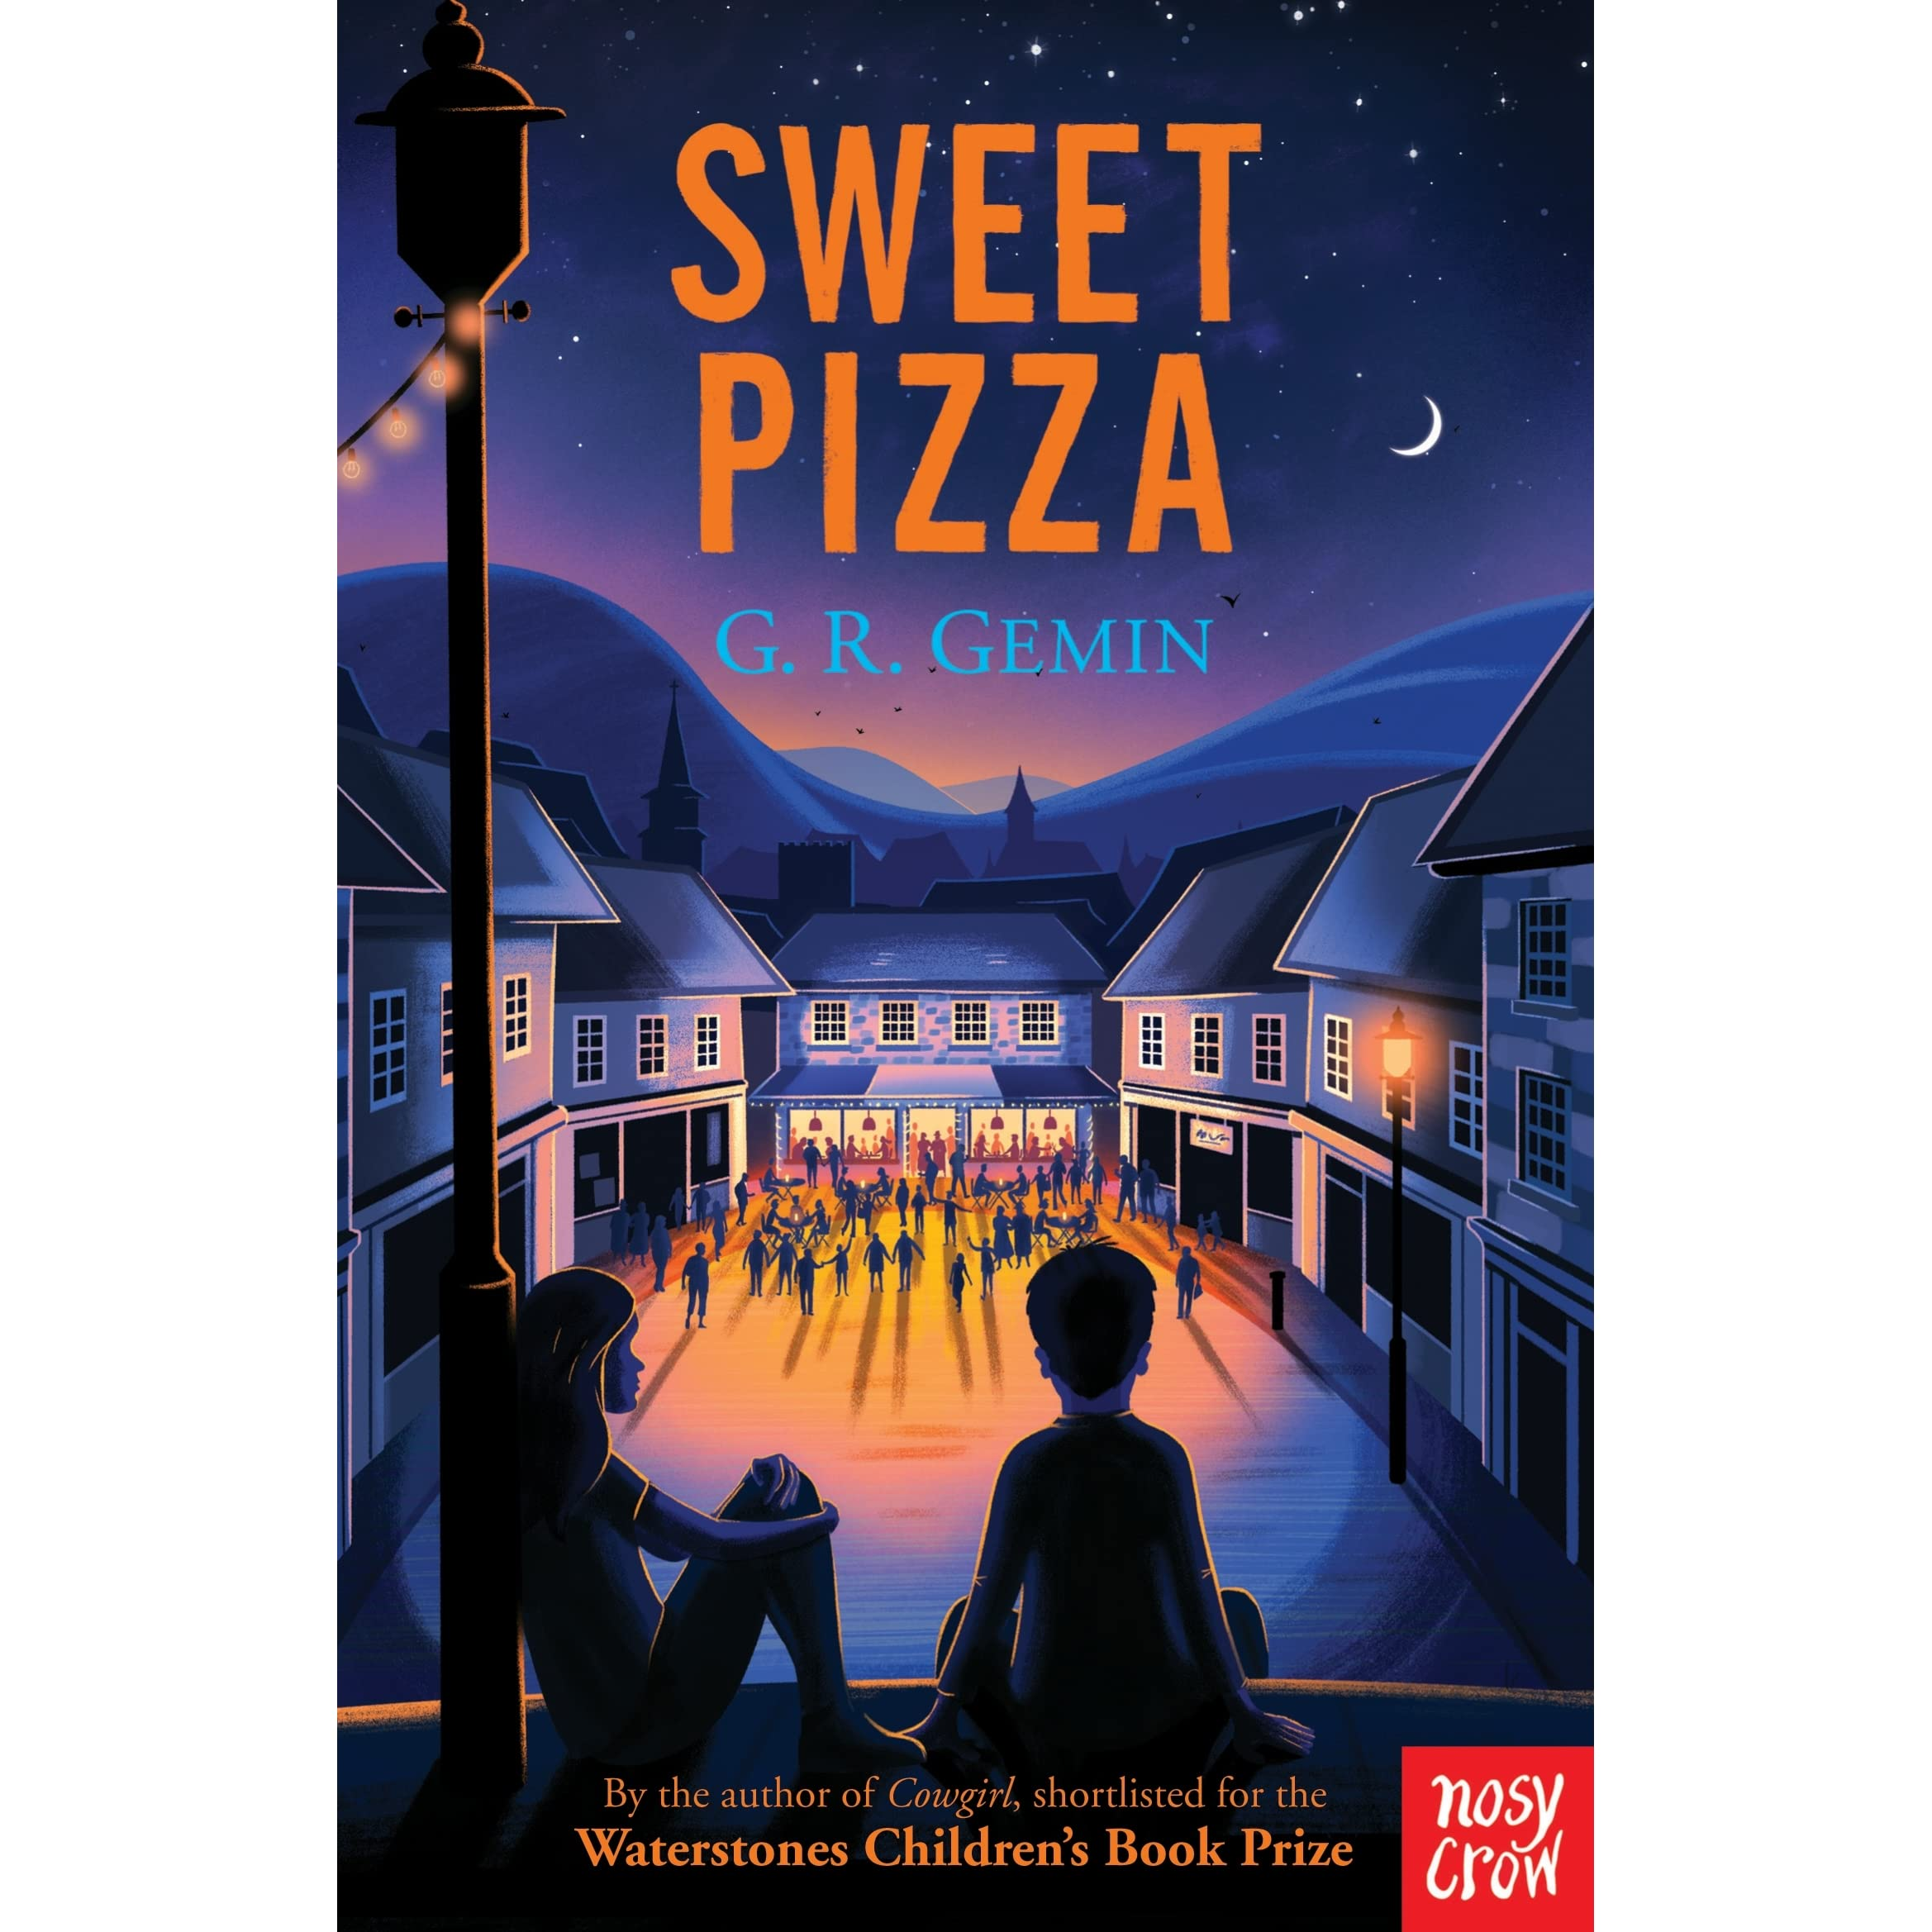 Business Book Cover History : Sweet pizza by g r gemin — reviews discussion bookclubs